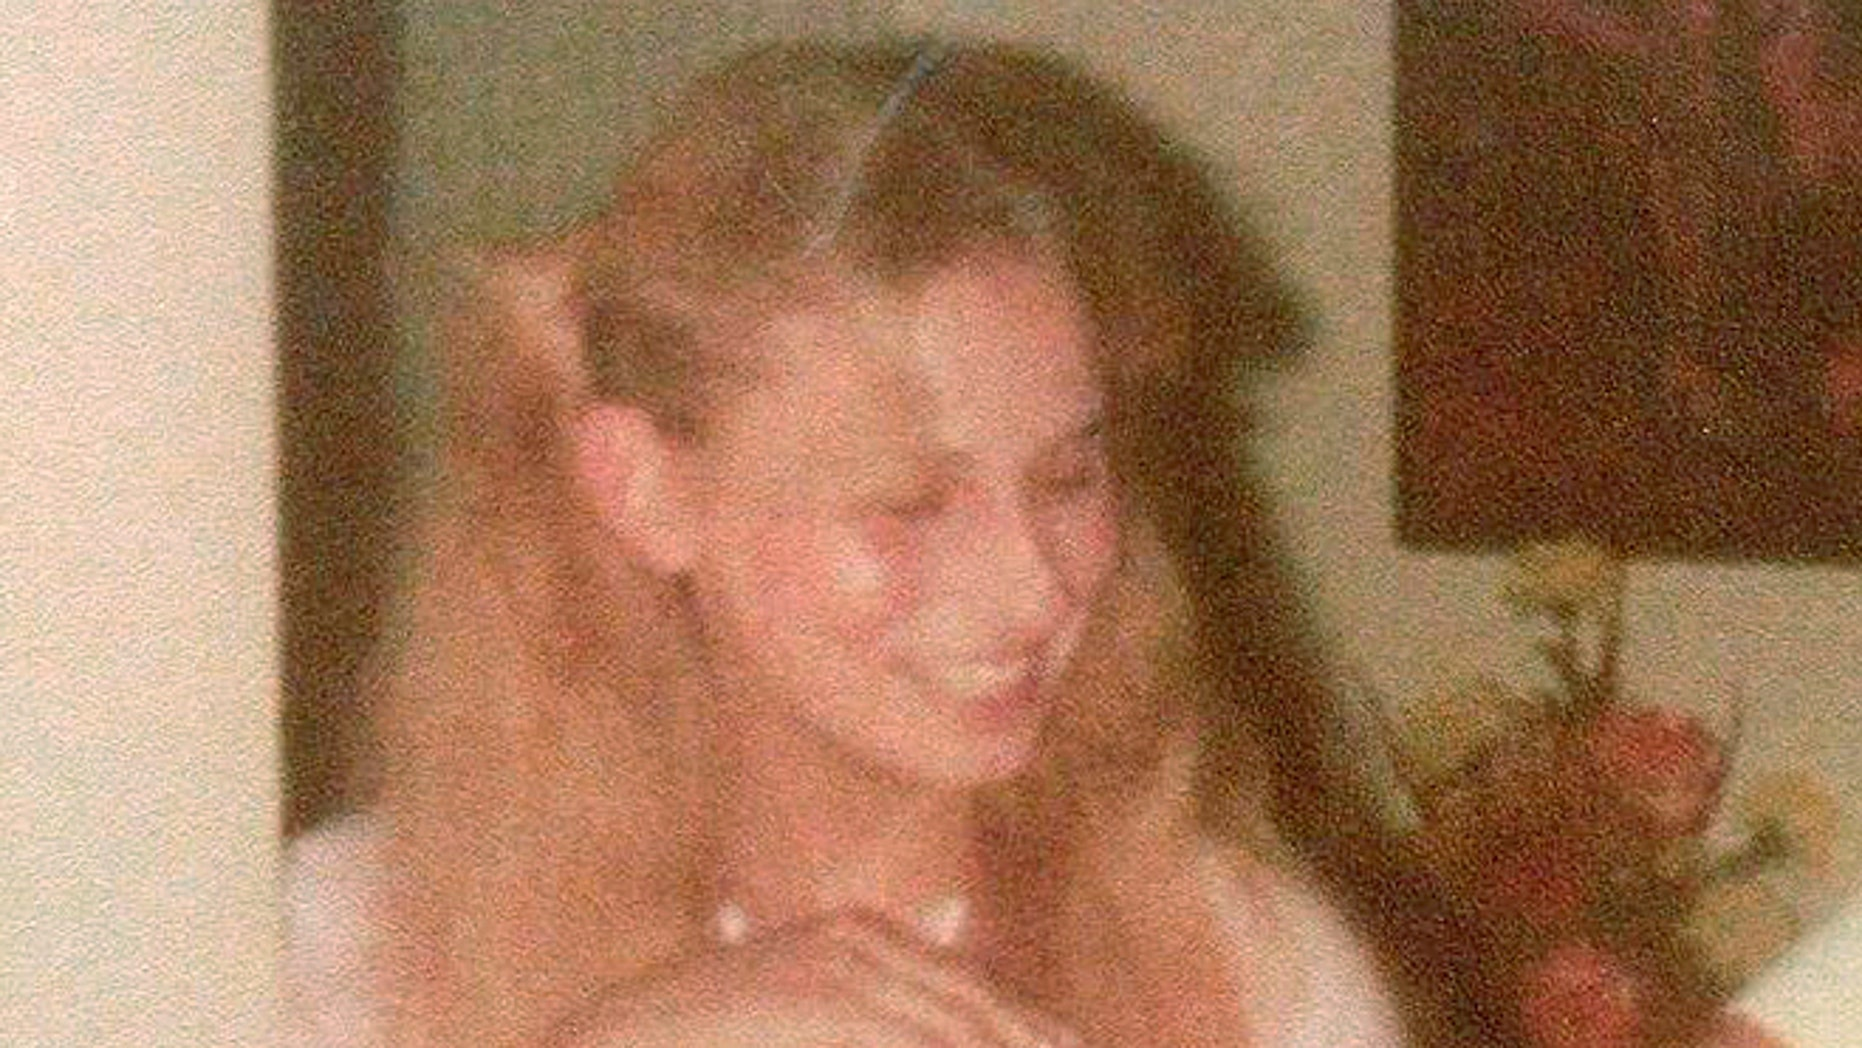 New York State Police continue to investigate the 1983 homicide of Florida woman Shari Lynne Ball found in the town of Shelby.